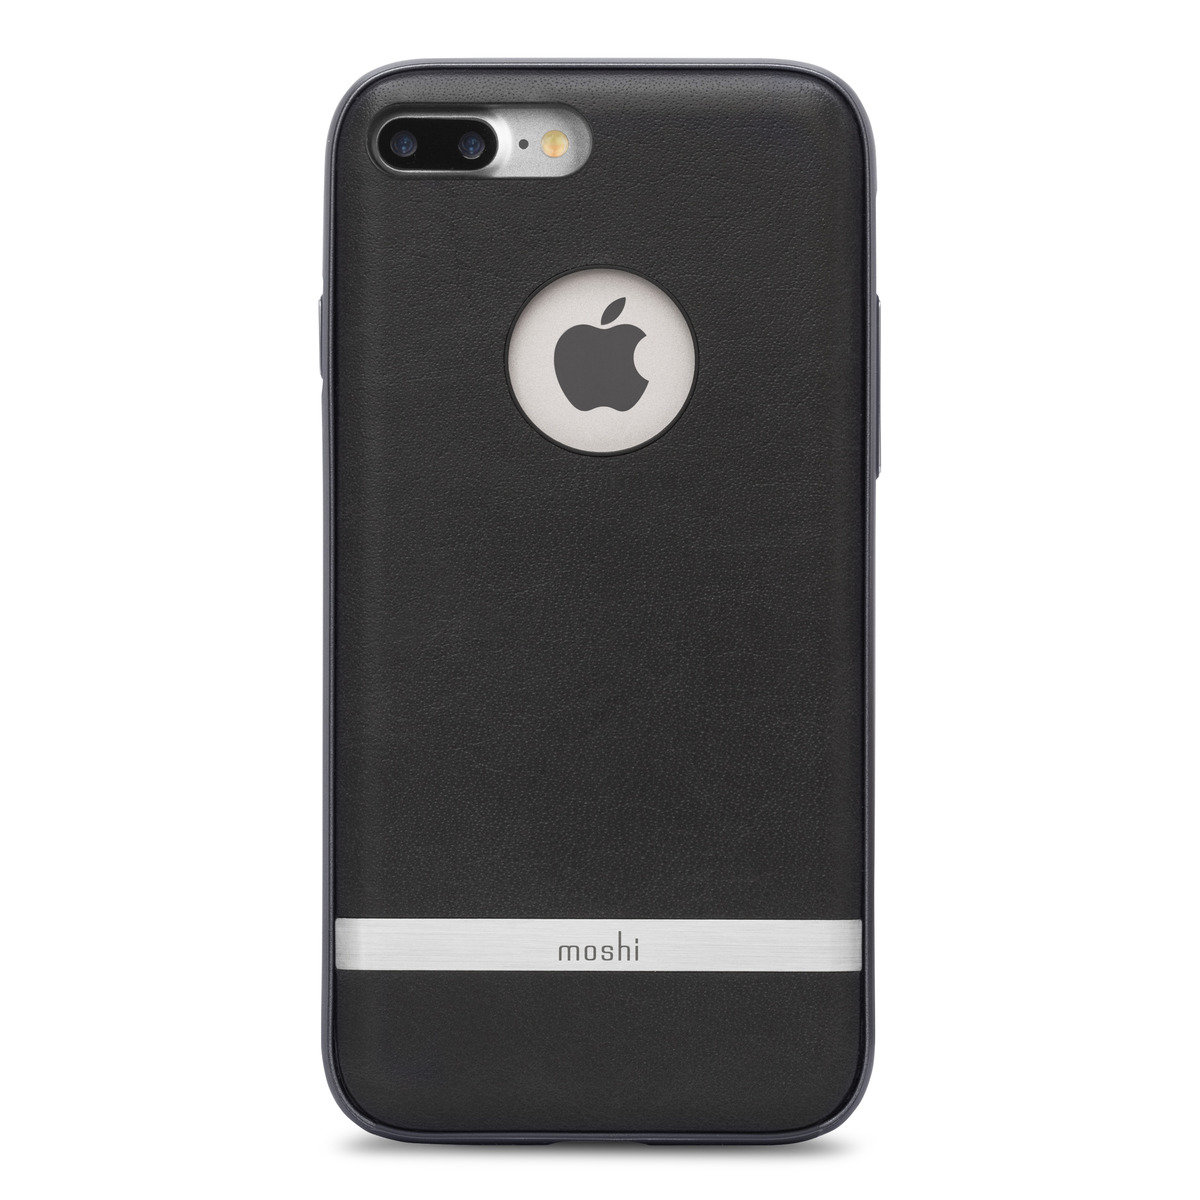 "Napa for new iPhone7 Plus 5.5""- Charcoal Black"